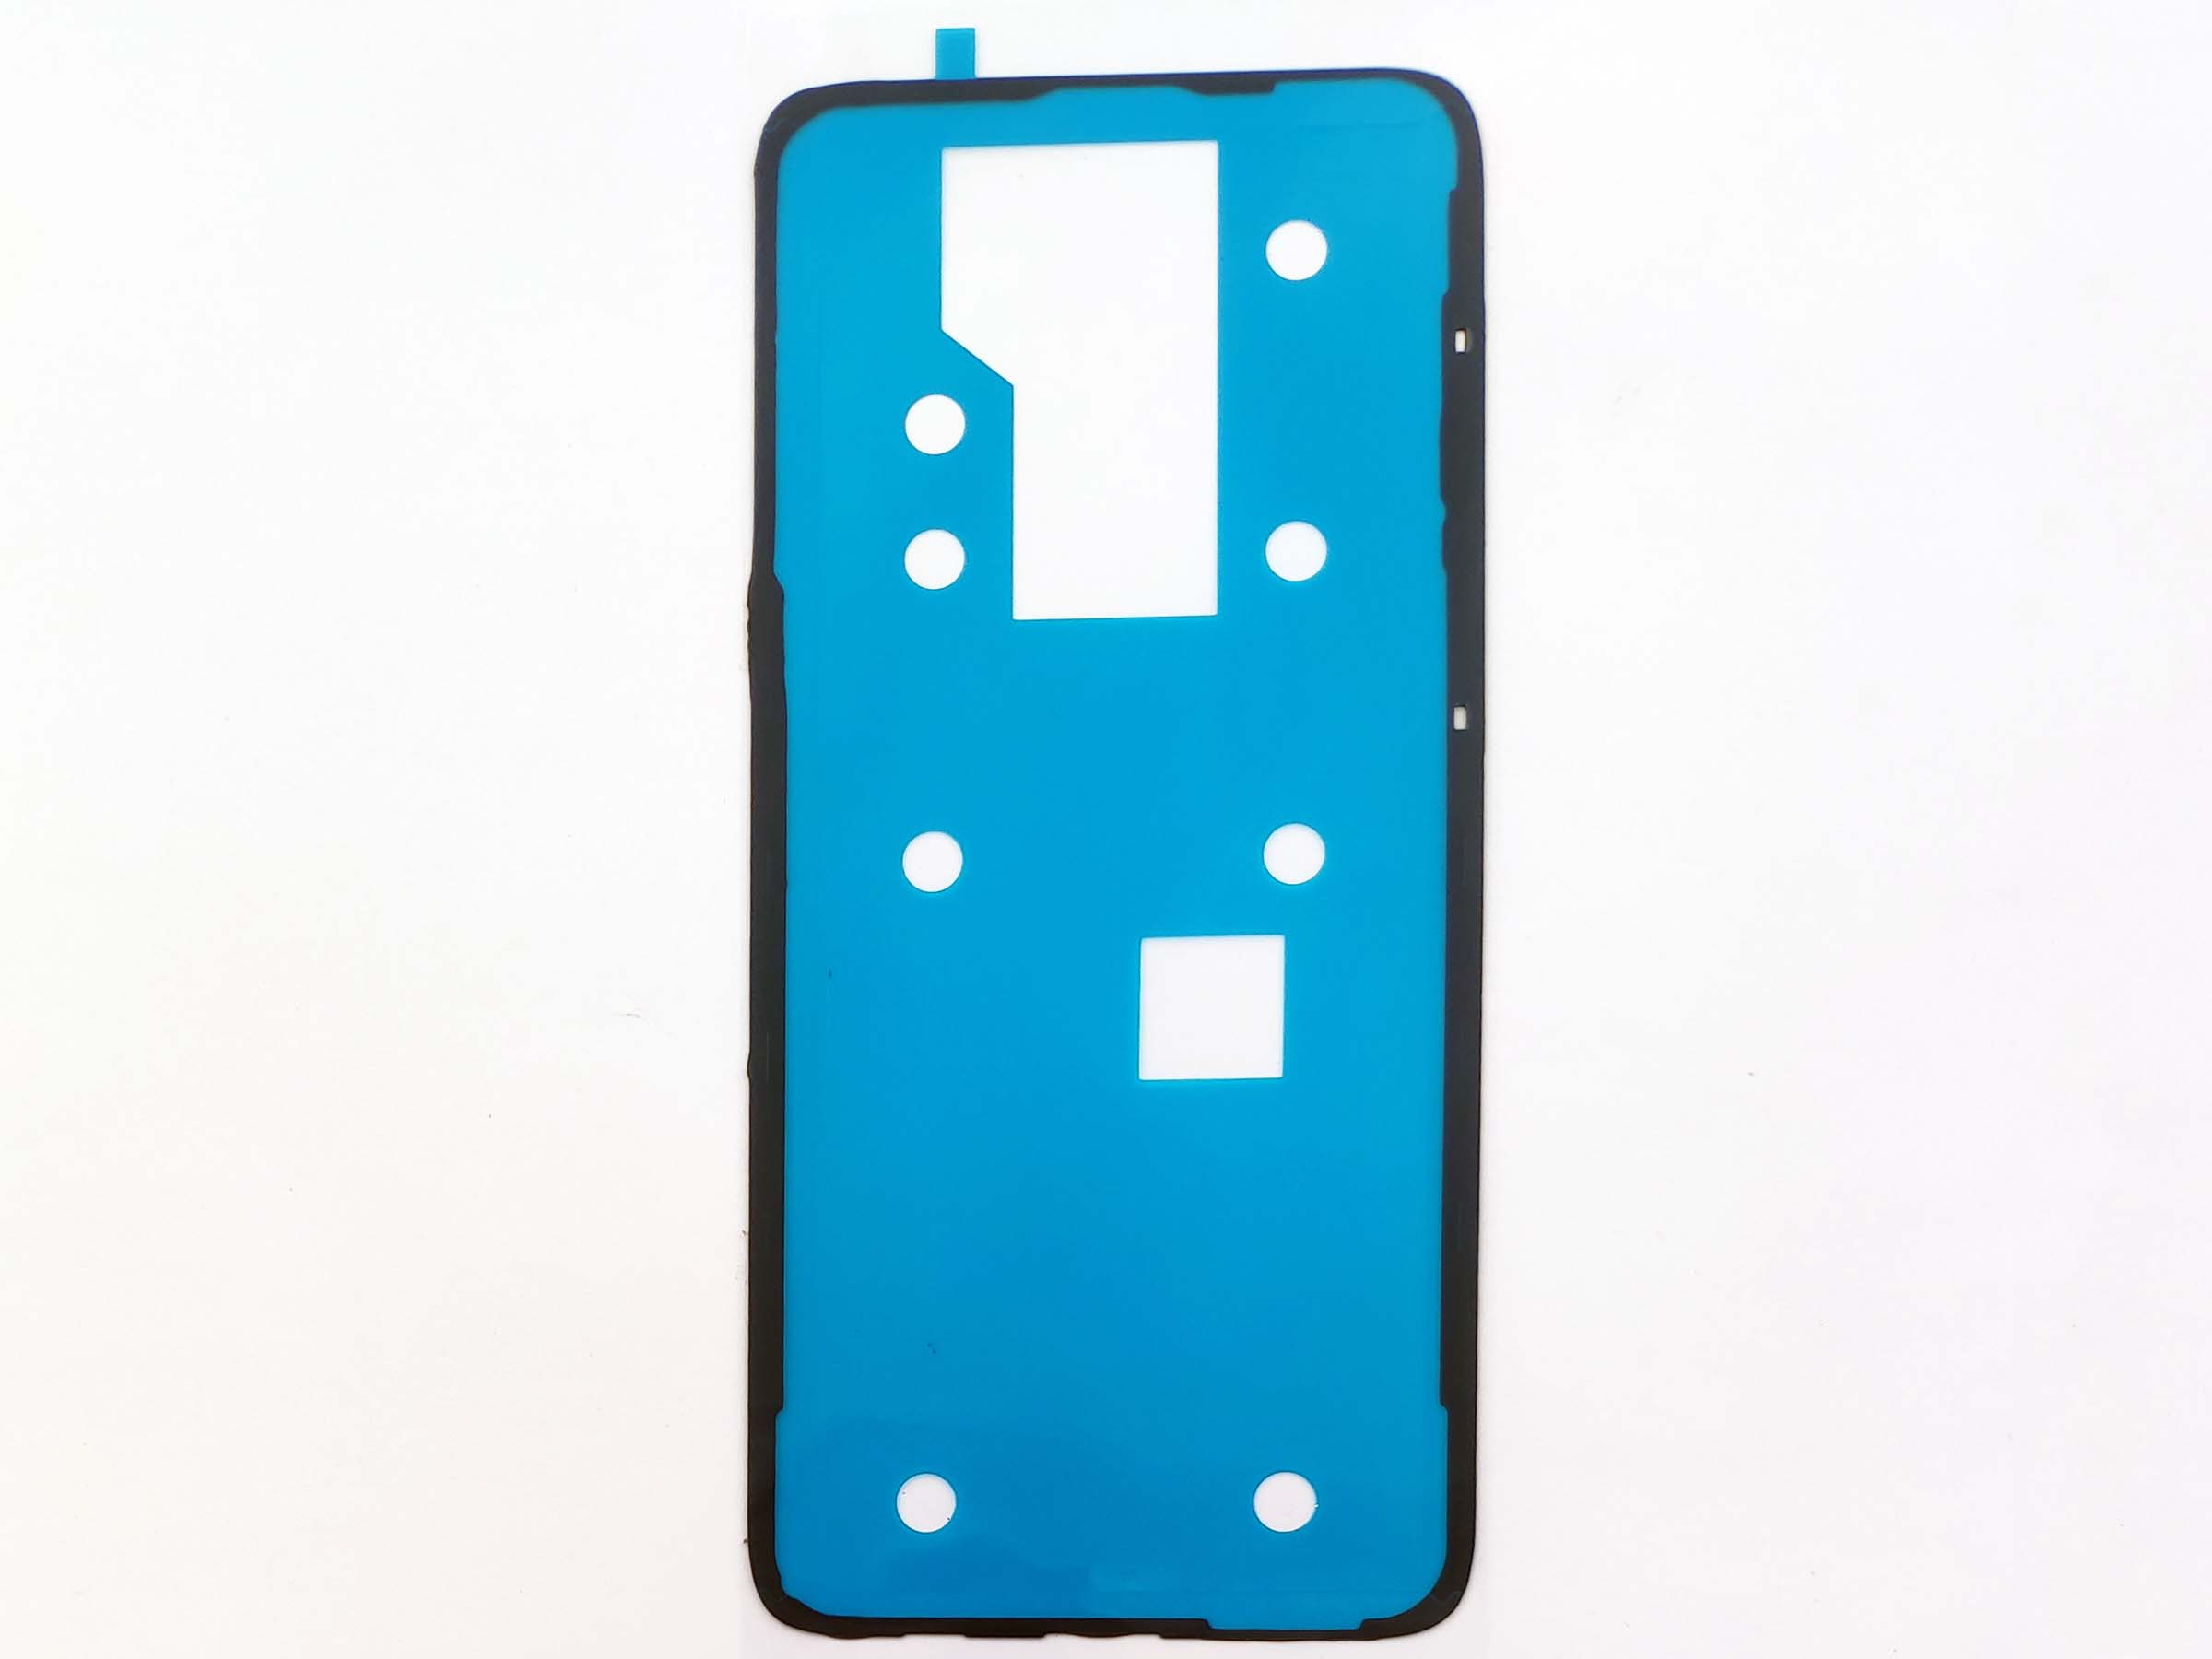 Colorful sim card tray holder for iPhone 5c